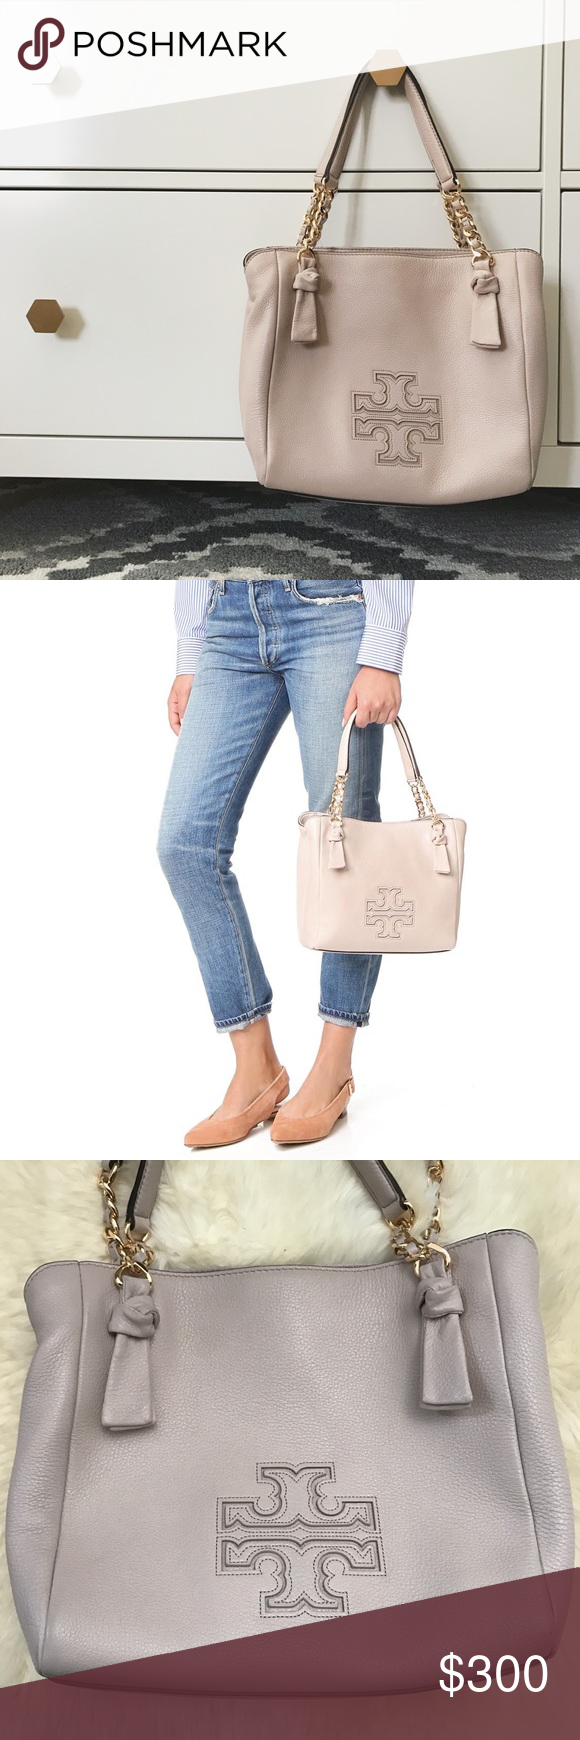 dbb9f069f9 Tory Burch Bedrock Blush Harper Small Satchel •Easy slouch meets the  refined details of chain and ribbon: Our Harper Small Satchel is made of  supple pebbled ...